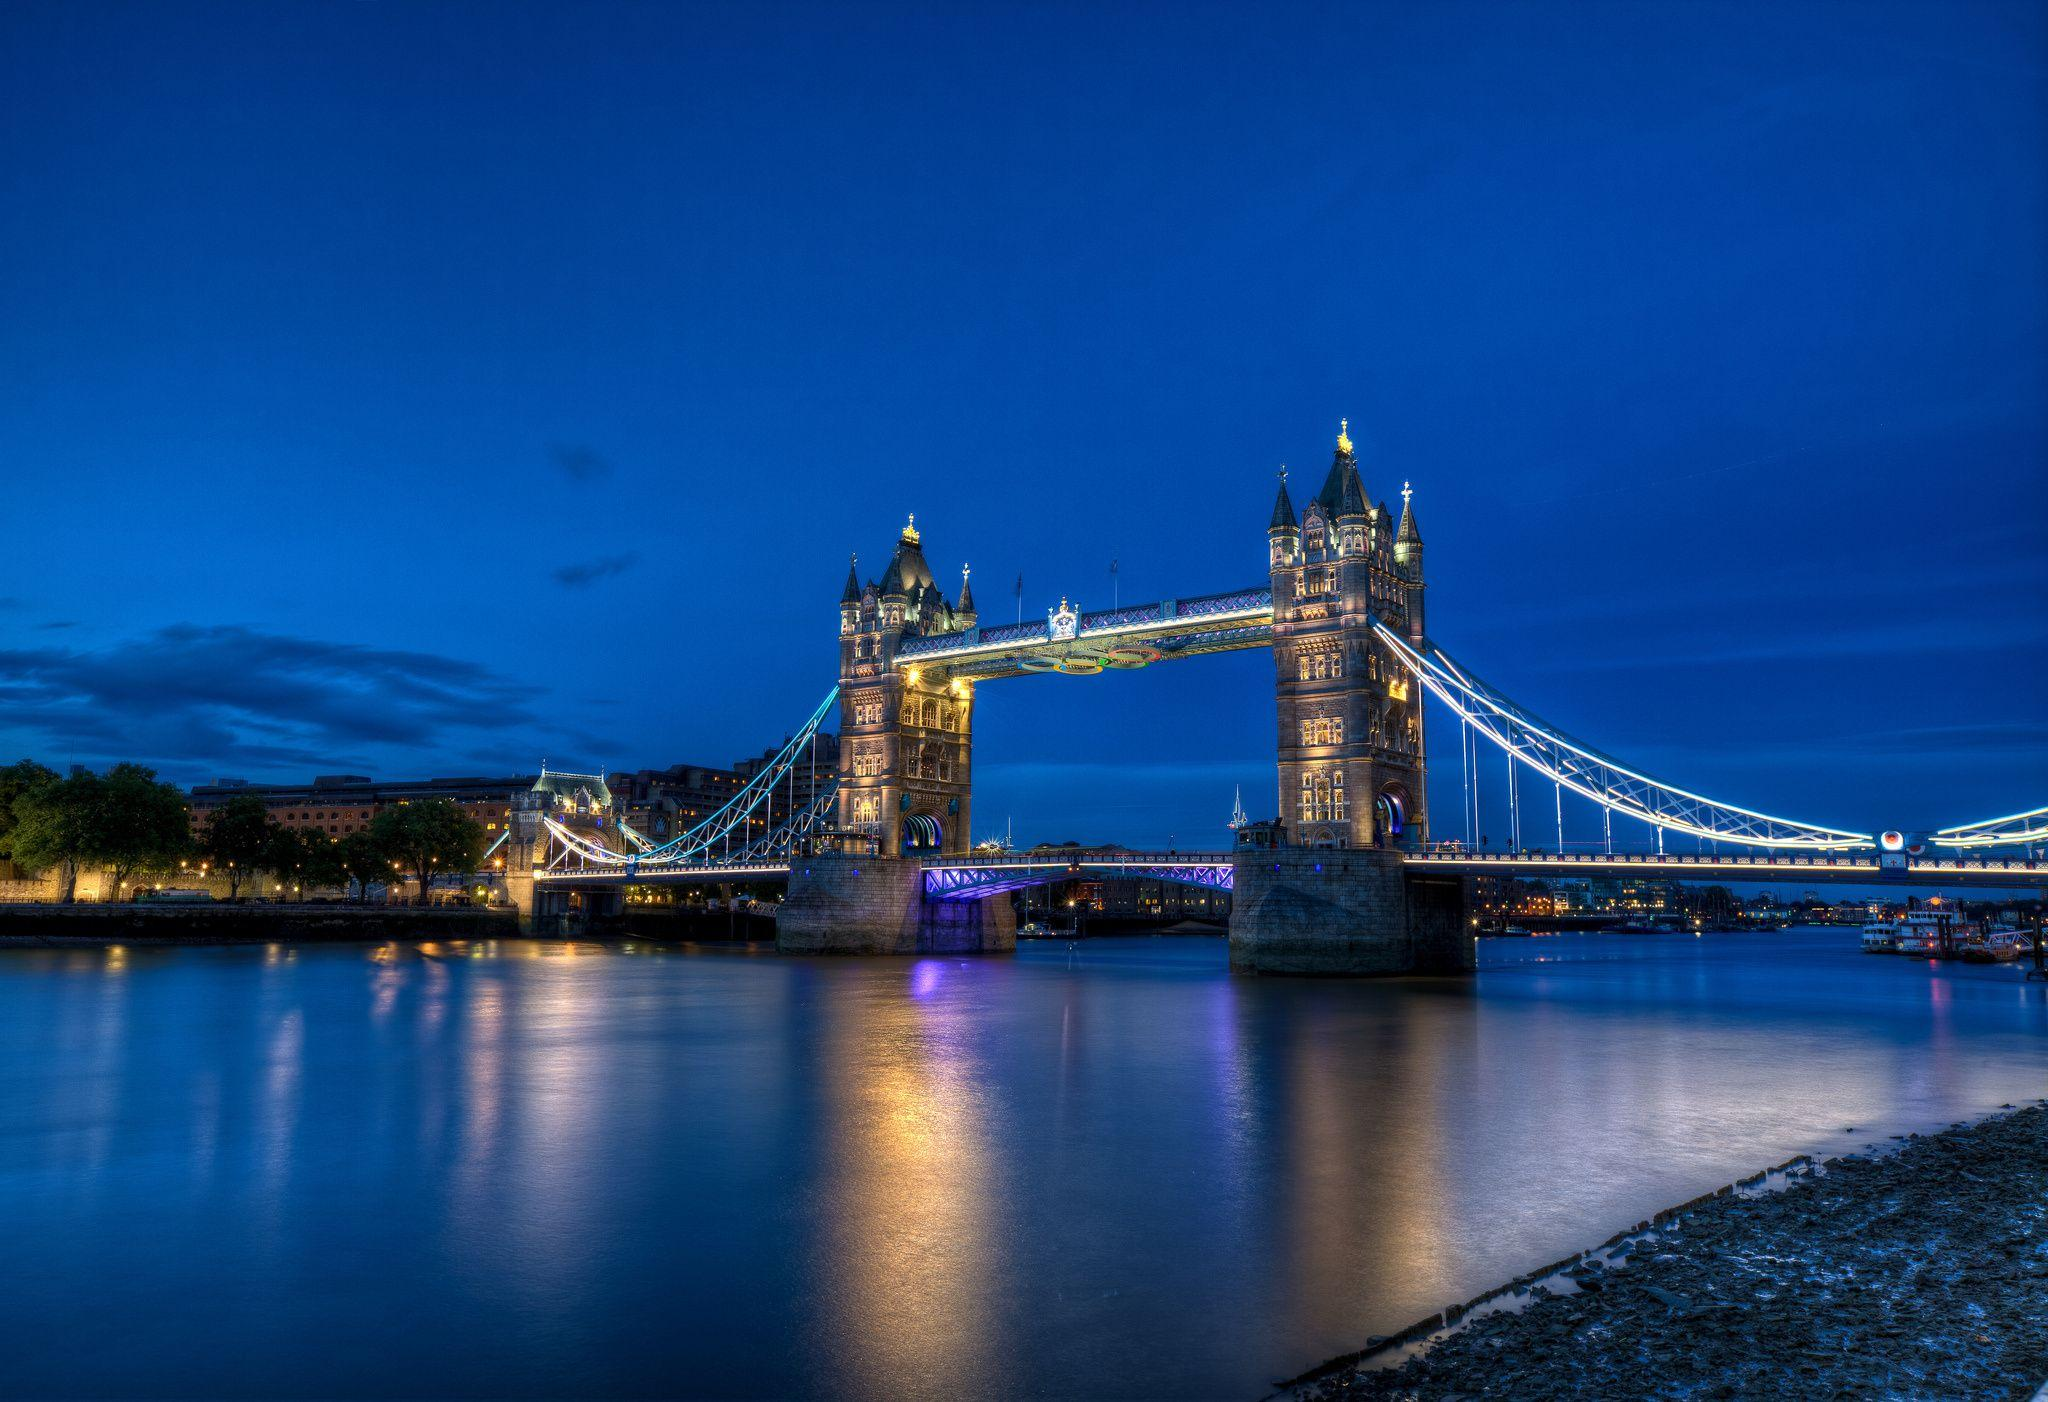 tower bridge london HD Wallpaper | Background Image | 2048x1402 | ID ...